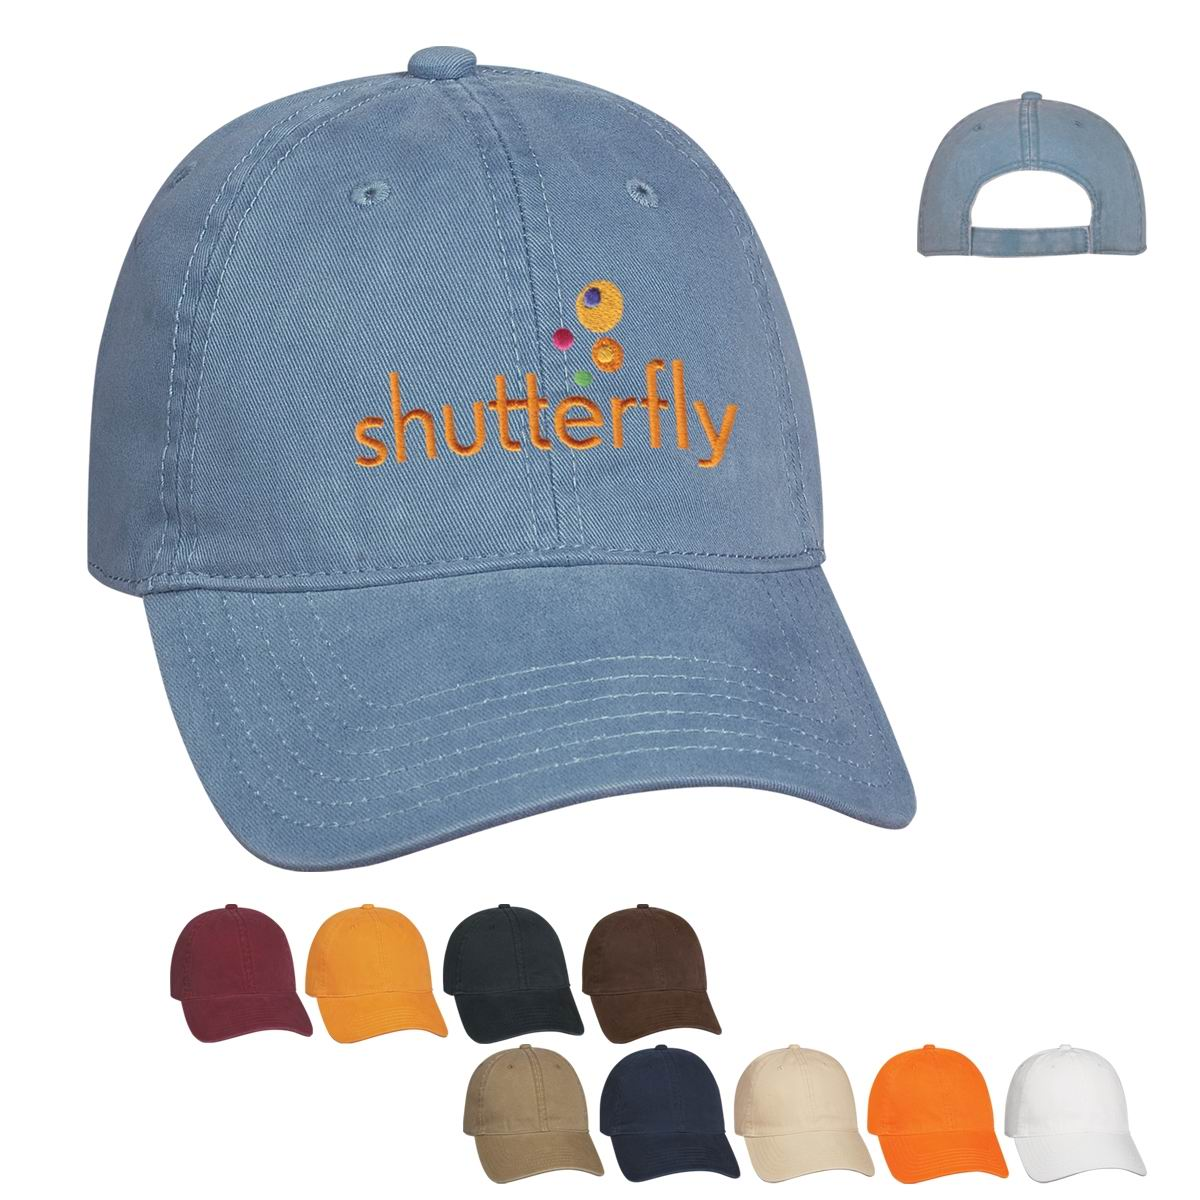 6 panel brushed cotton structured cap